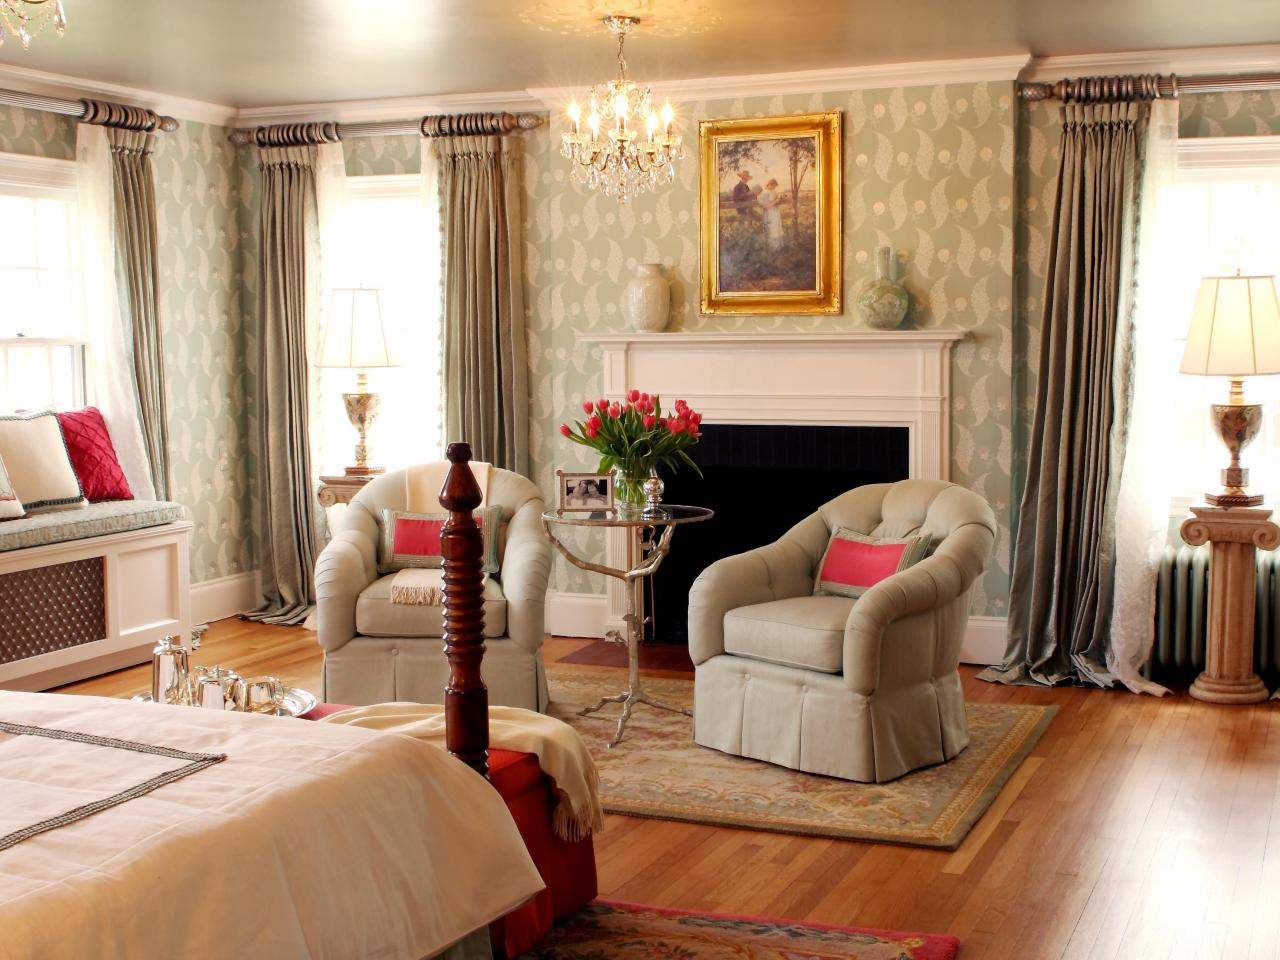 Stylish Home Design Ideas Bedroom Window Treatment Ideas